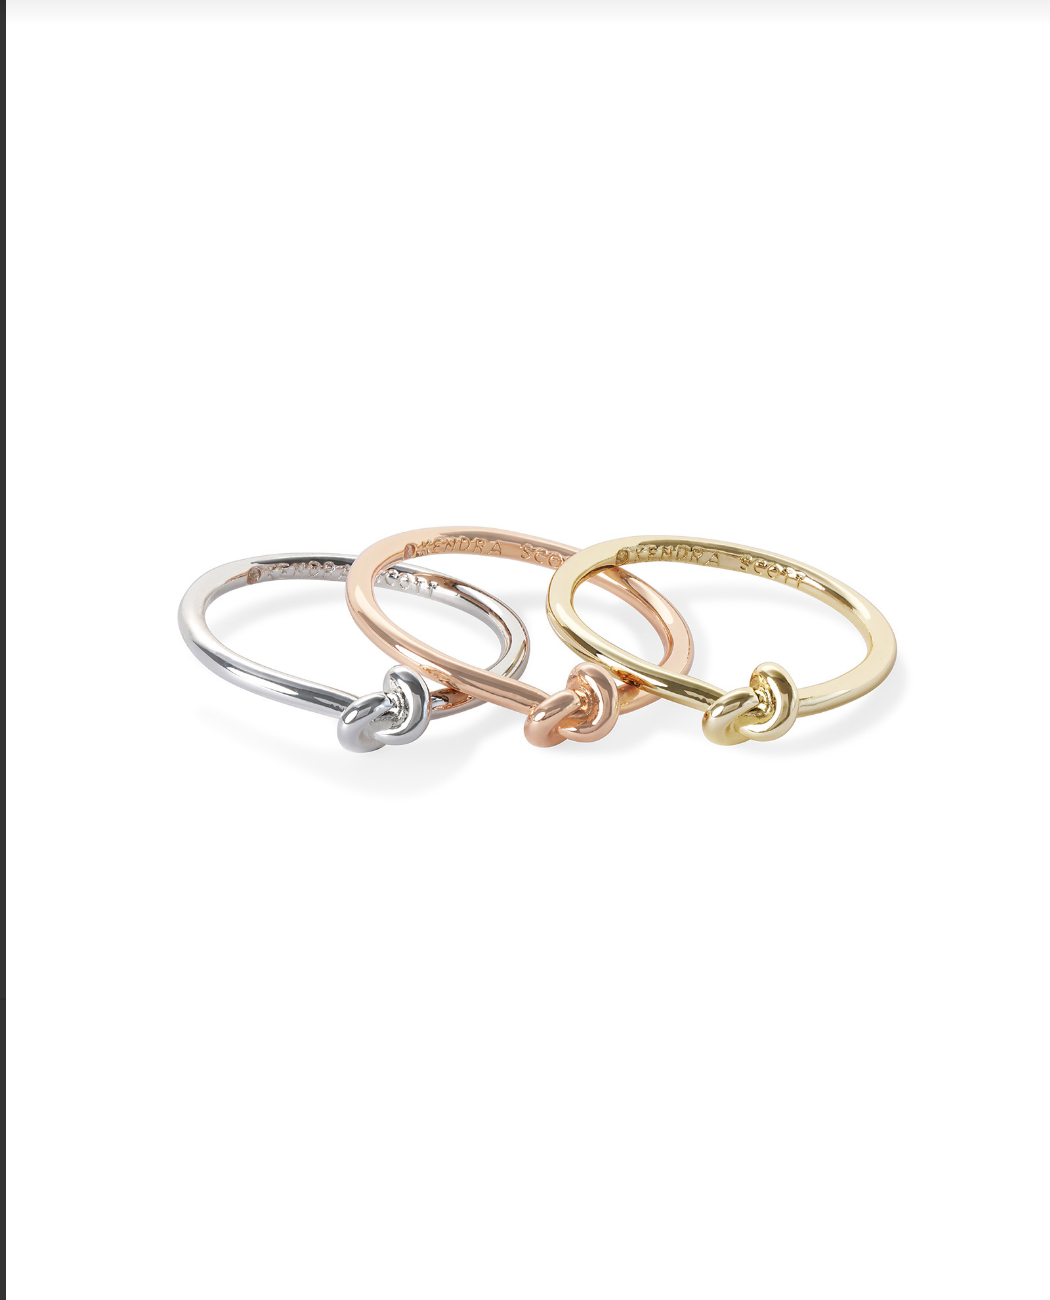 Presleigh Knot Ring Set